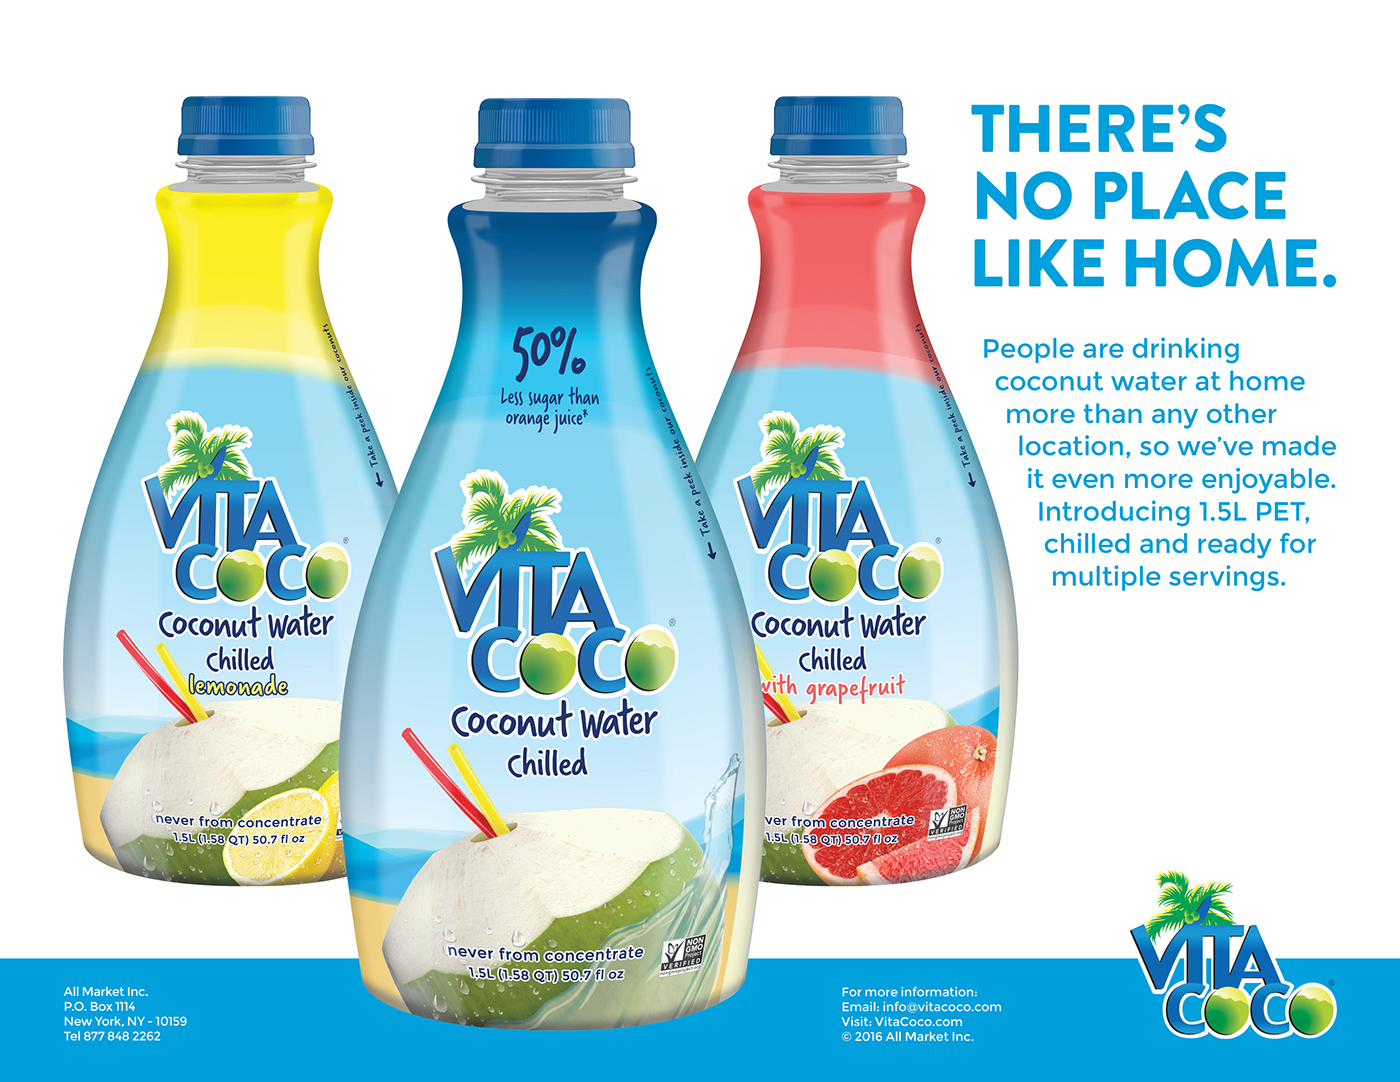 coconut water coconut Learn the health benefits of coconut water, plus see the results of our taste test to find the most delicious varieties.